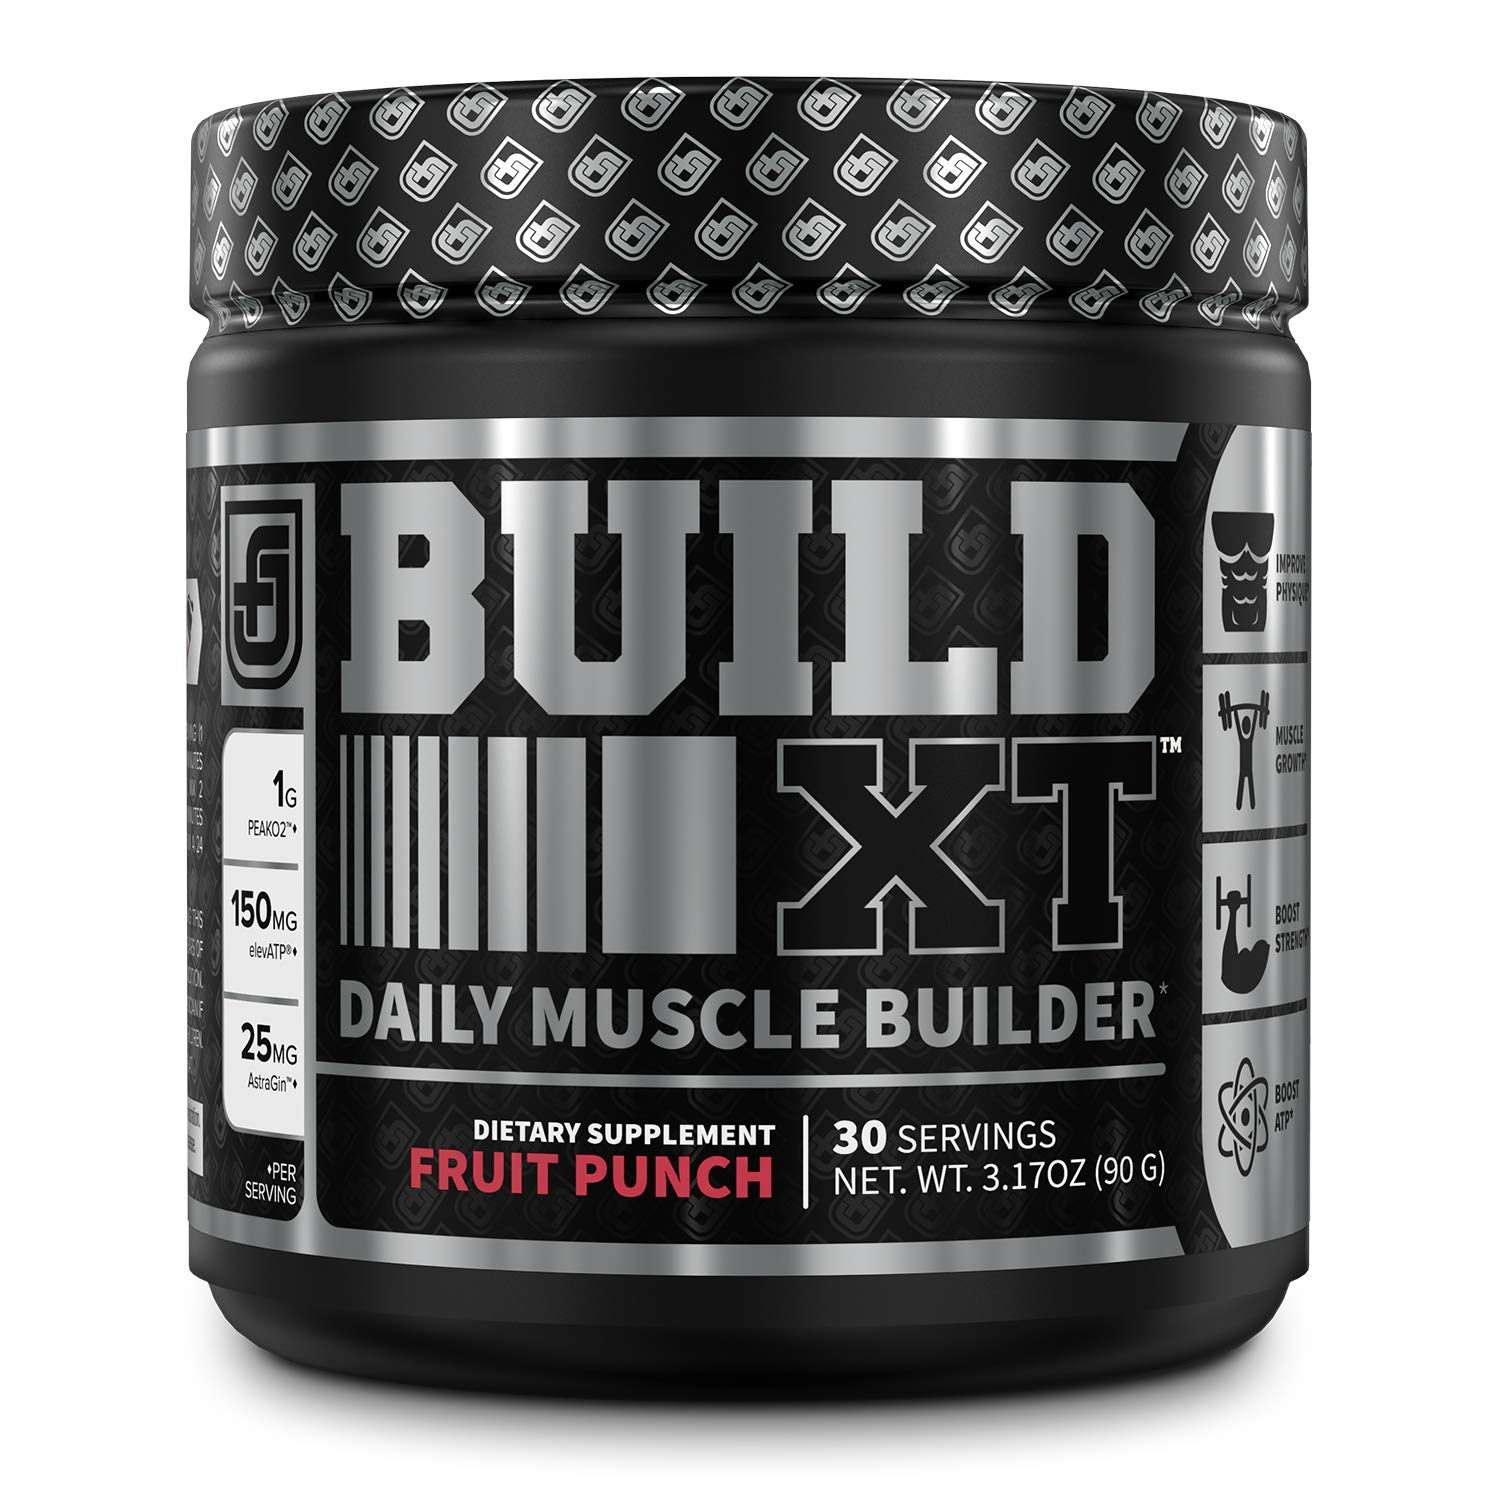 Build-XT Muscle Building Powder - Daily Muscle Builder Supplement for Muscle Growth, Strength, Endurance & Recovery | Featuring Powerful Science-Backed Ingredients Peak02 & elevATP - Fruit Punch, 30sv by Jacked Factory